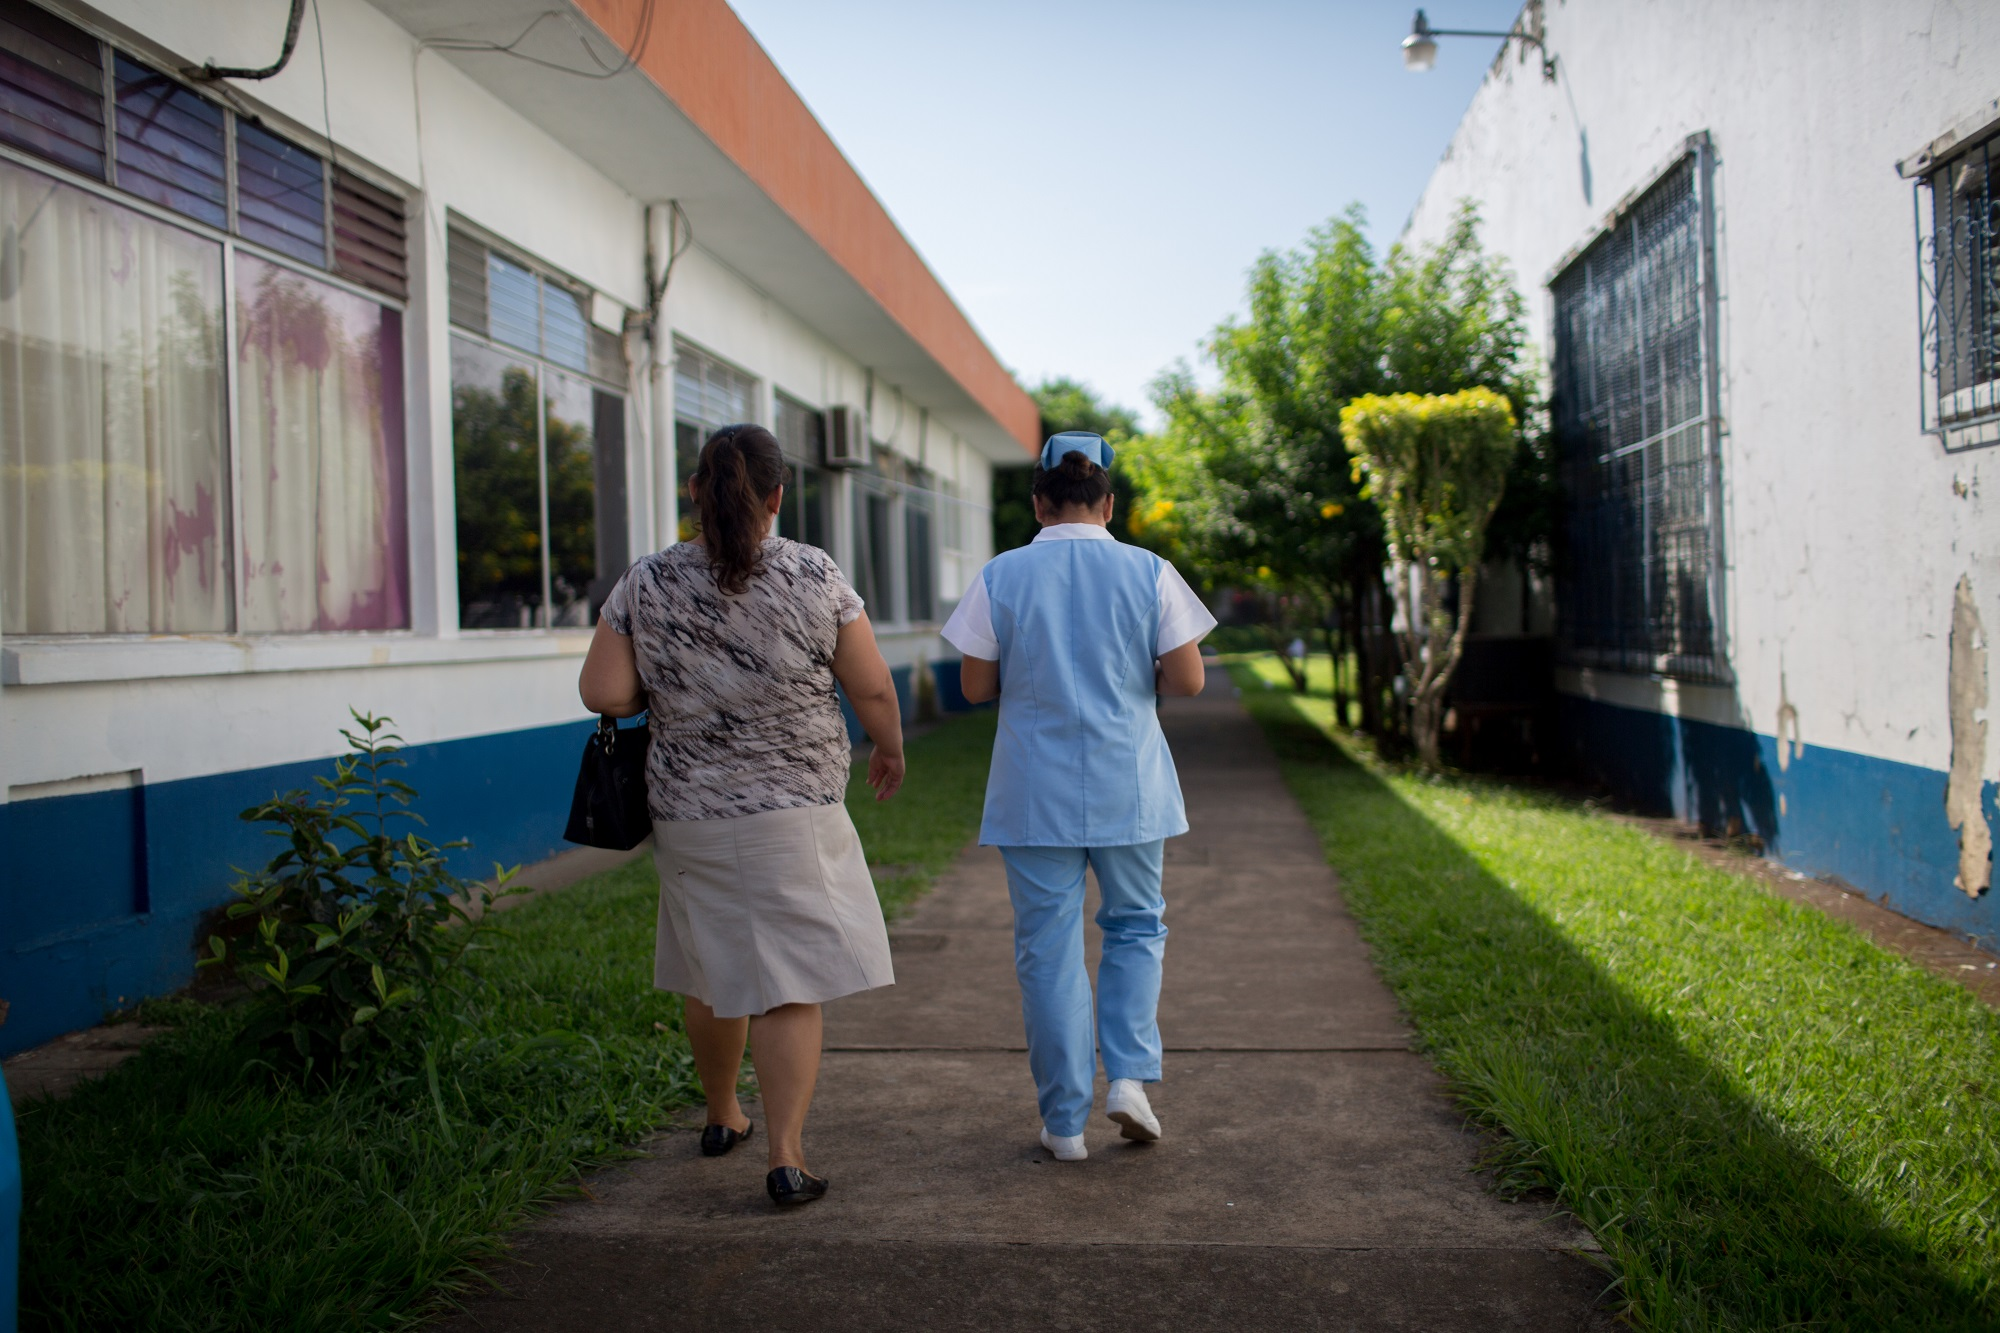 A nurse takes escorts a client to health services in Guatemala. Photo by Anna Watts for IntraHealth International.